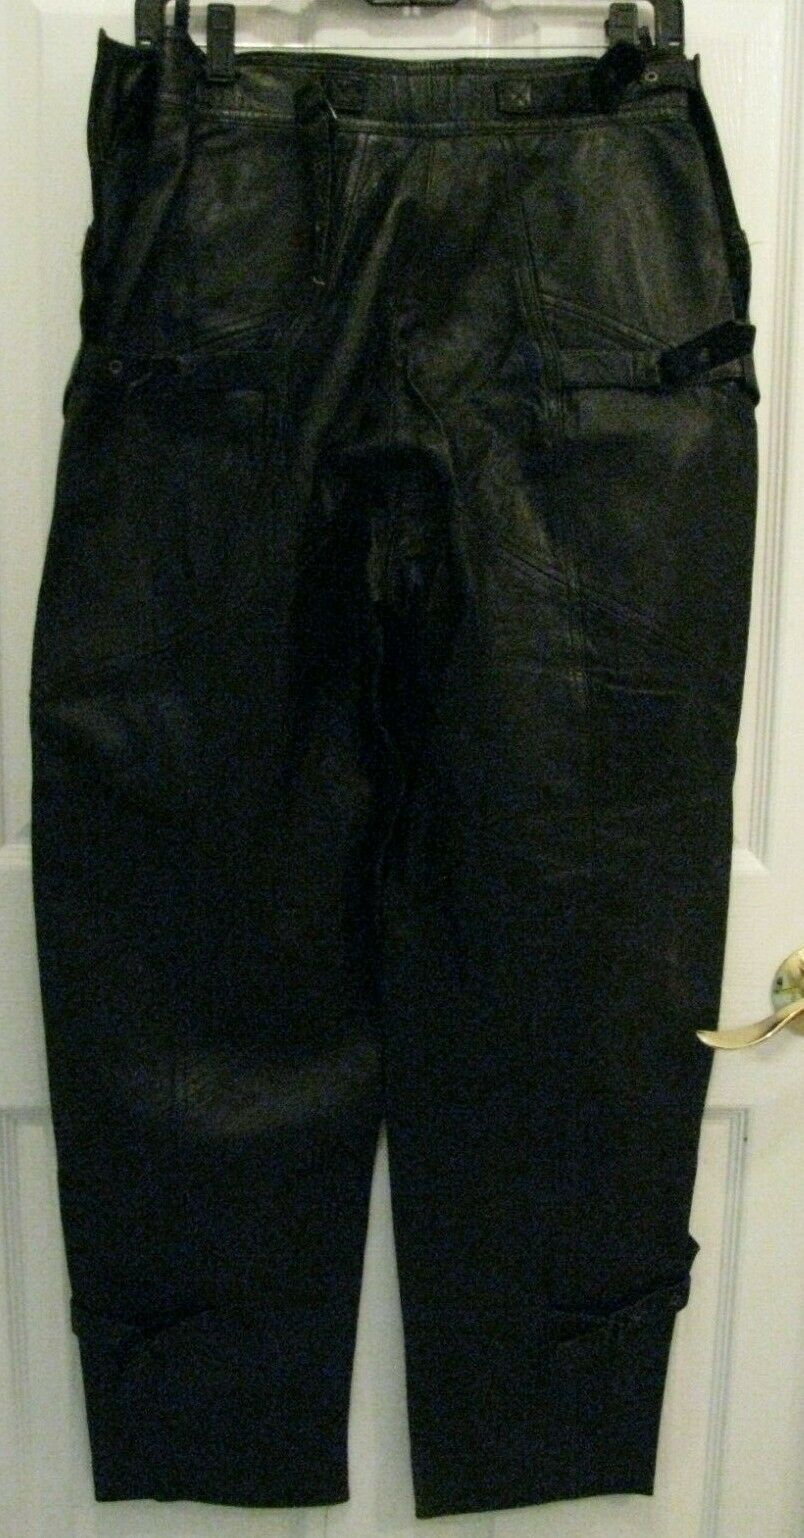 Les Terribles Leather Chaps Pants Made In France Size 38